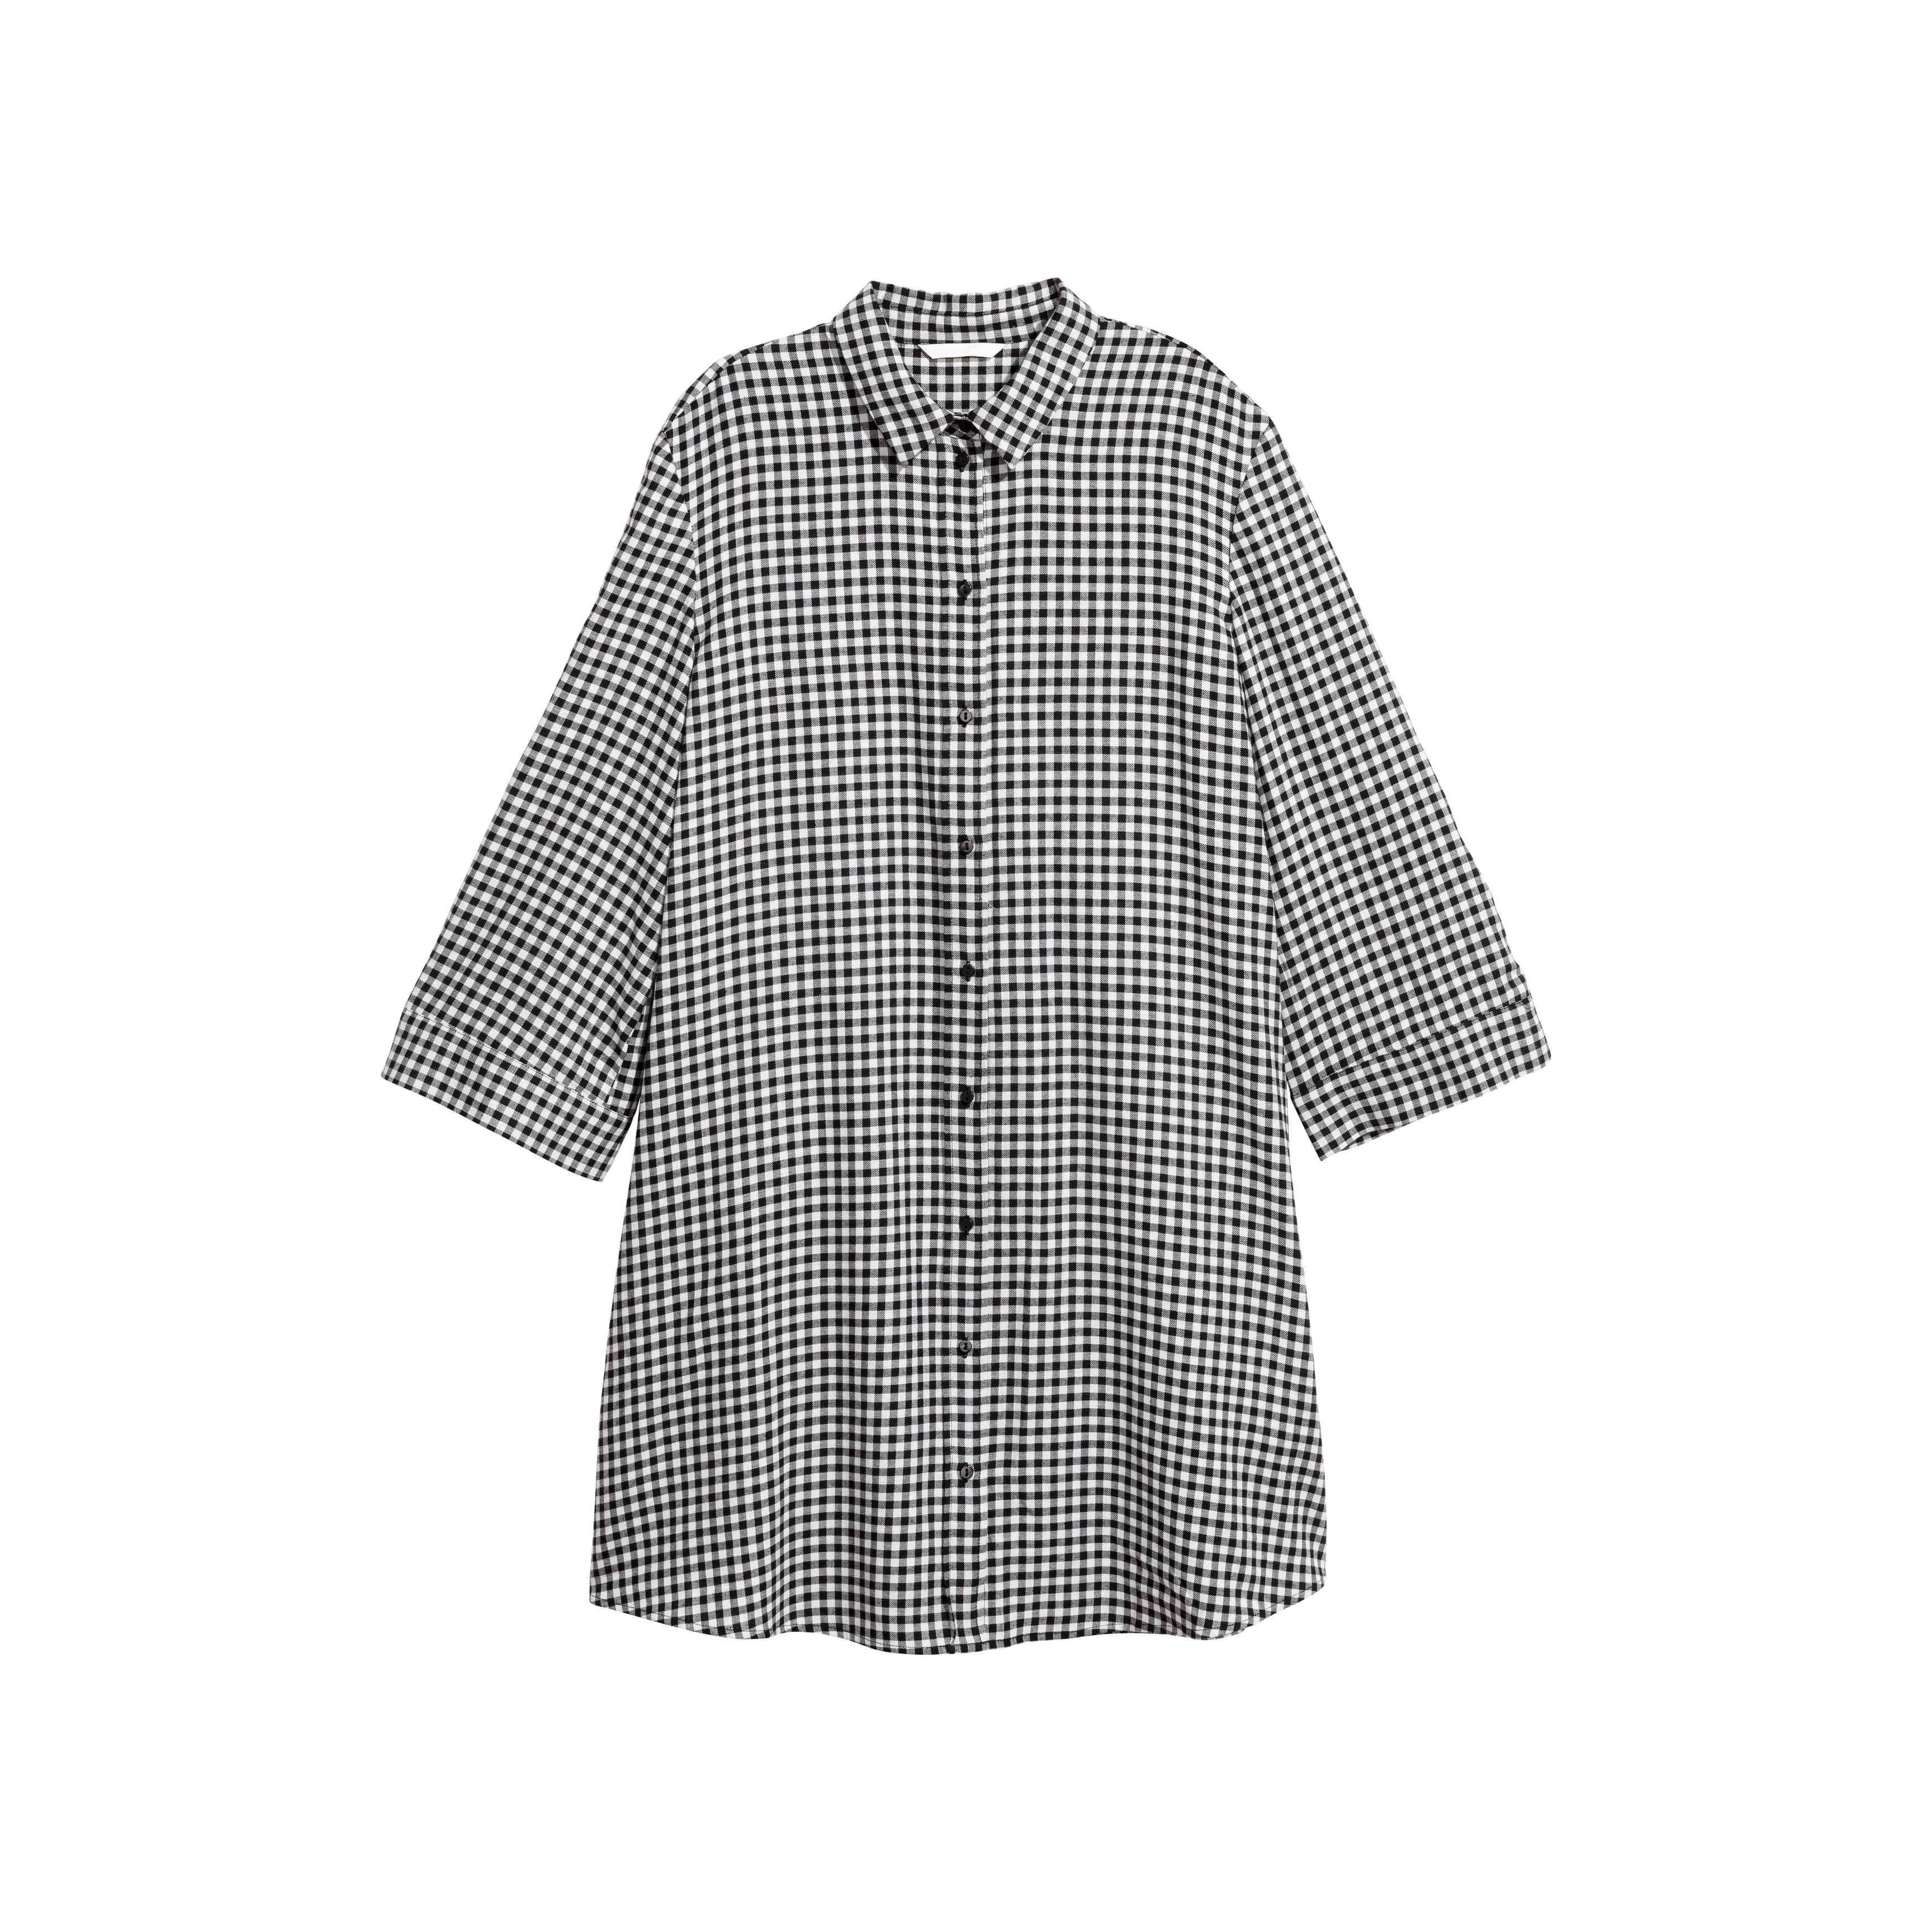 b92a12b742d Womens Black And White Checkered Shirts - Cotswold Hire